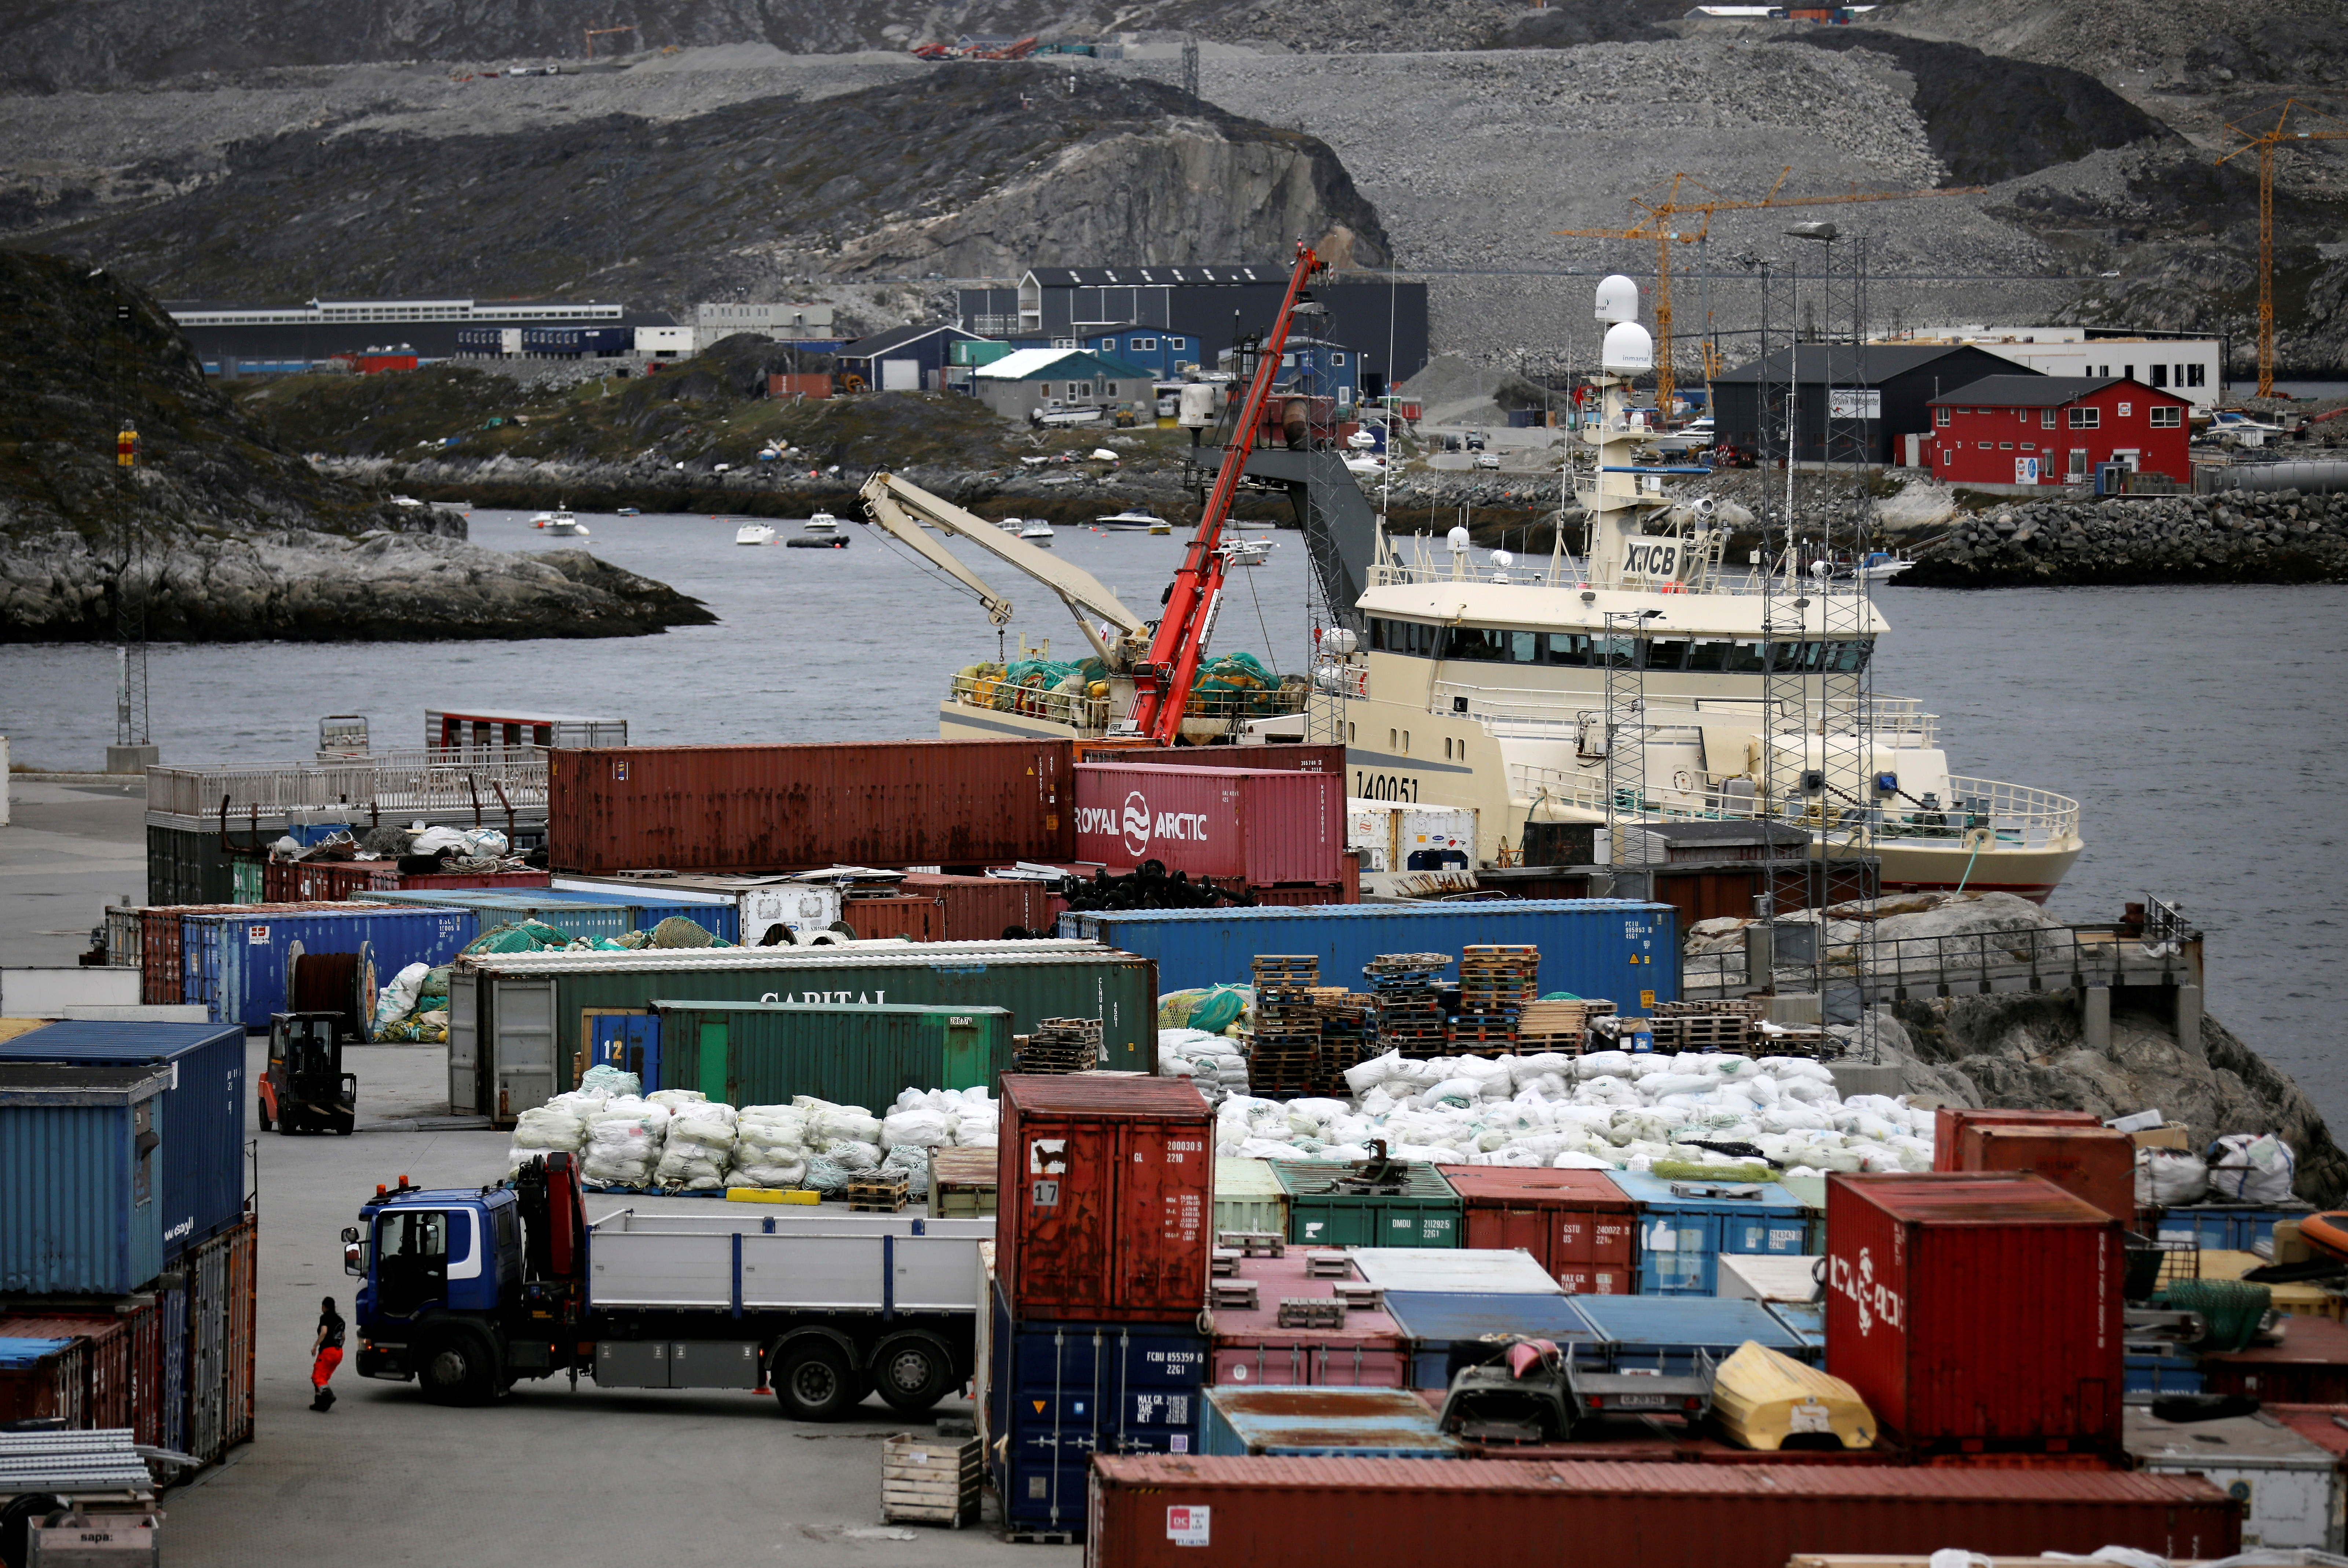 A view of the harbor in Nuuk, Greenland, September 8, 2021. REUTERS/Hannibal Hanschke